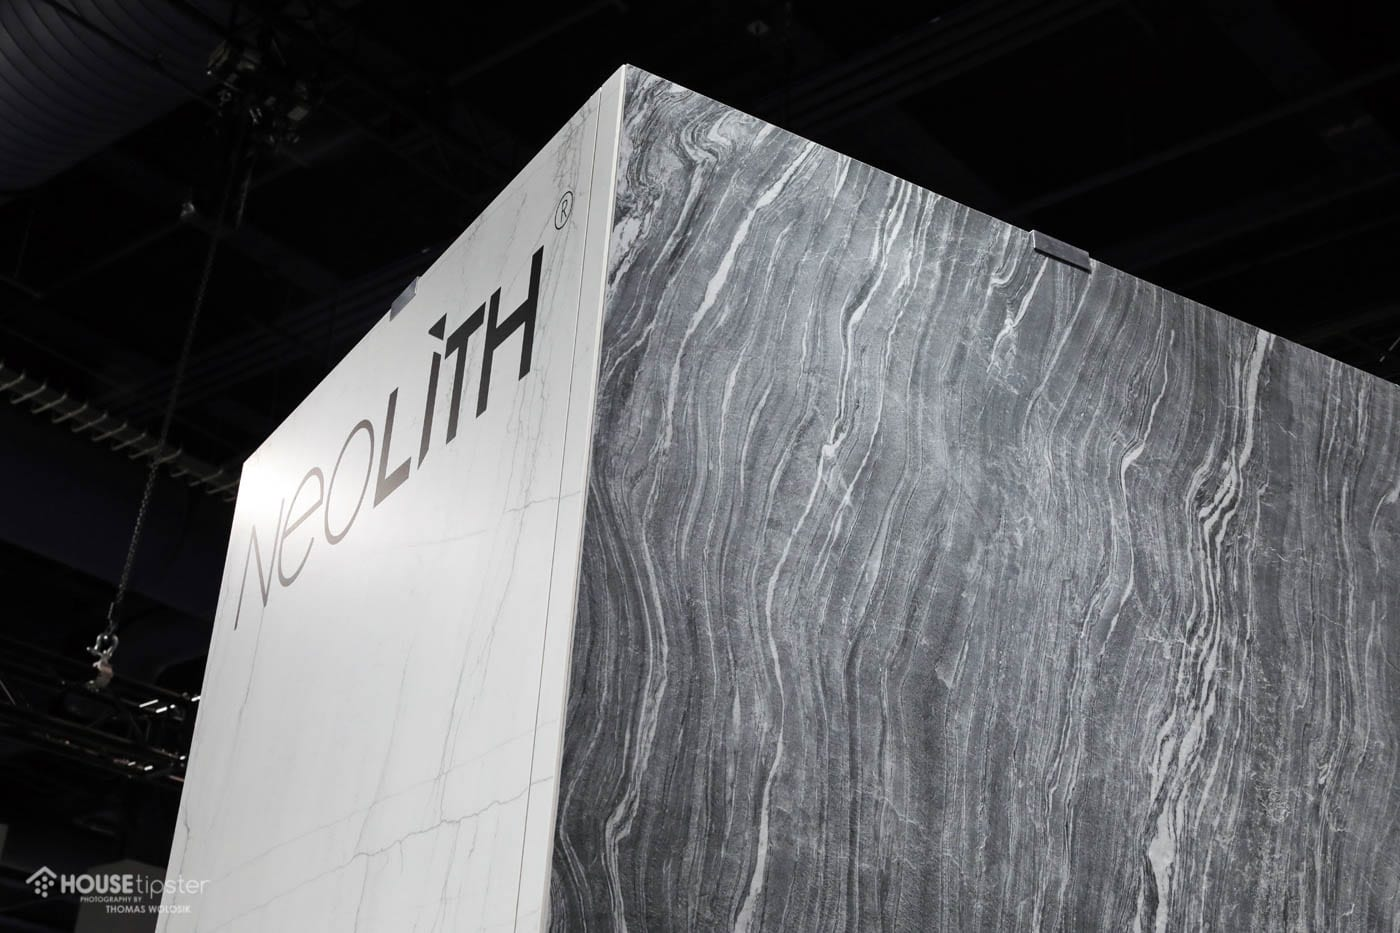 What Is Neolith